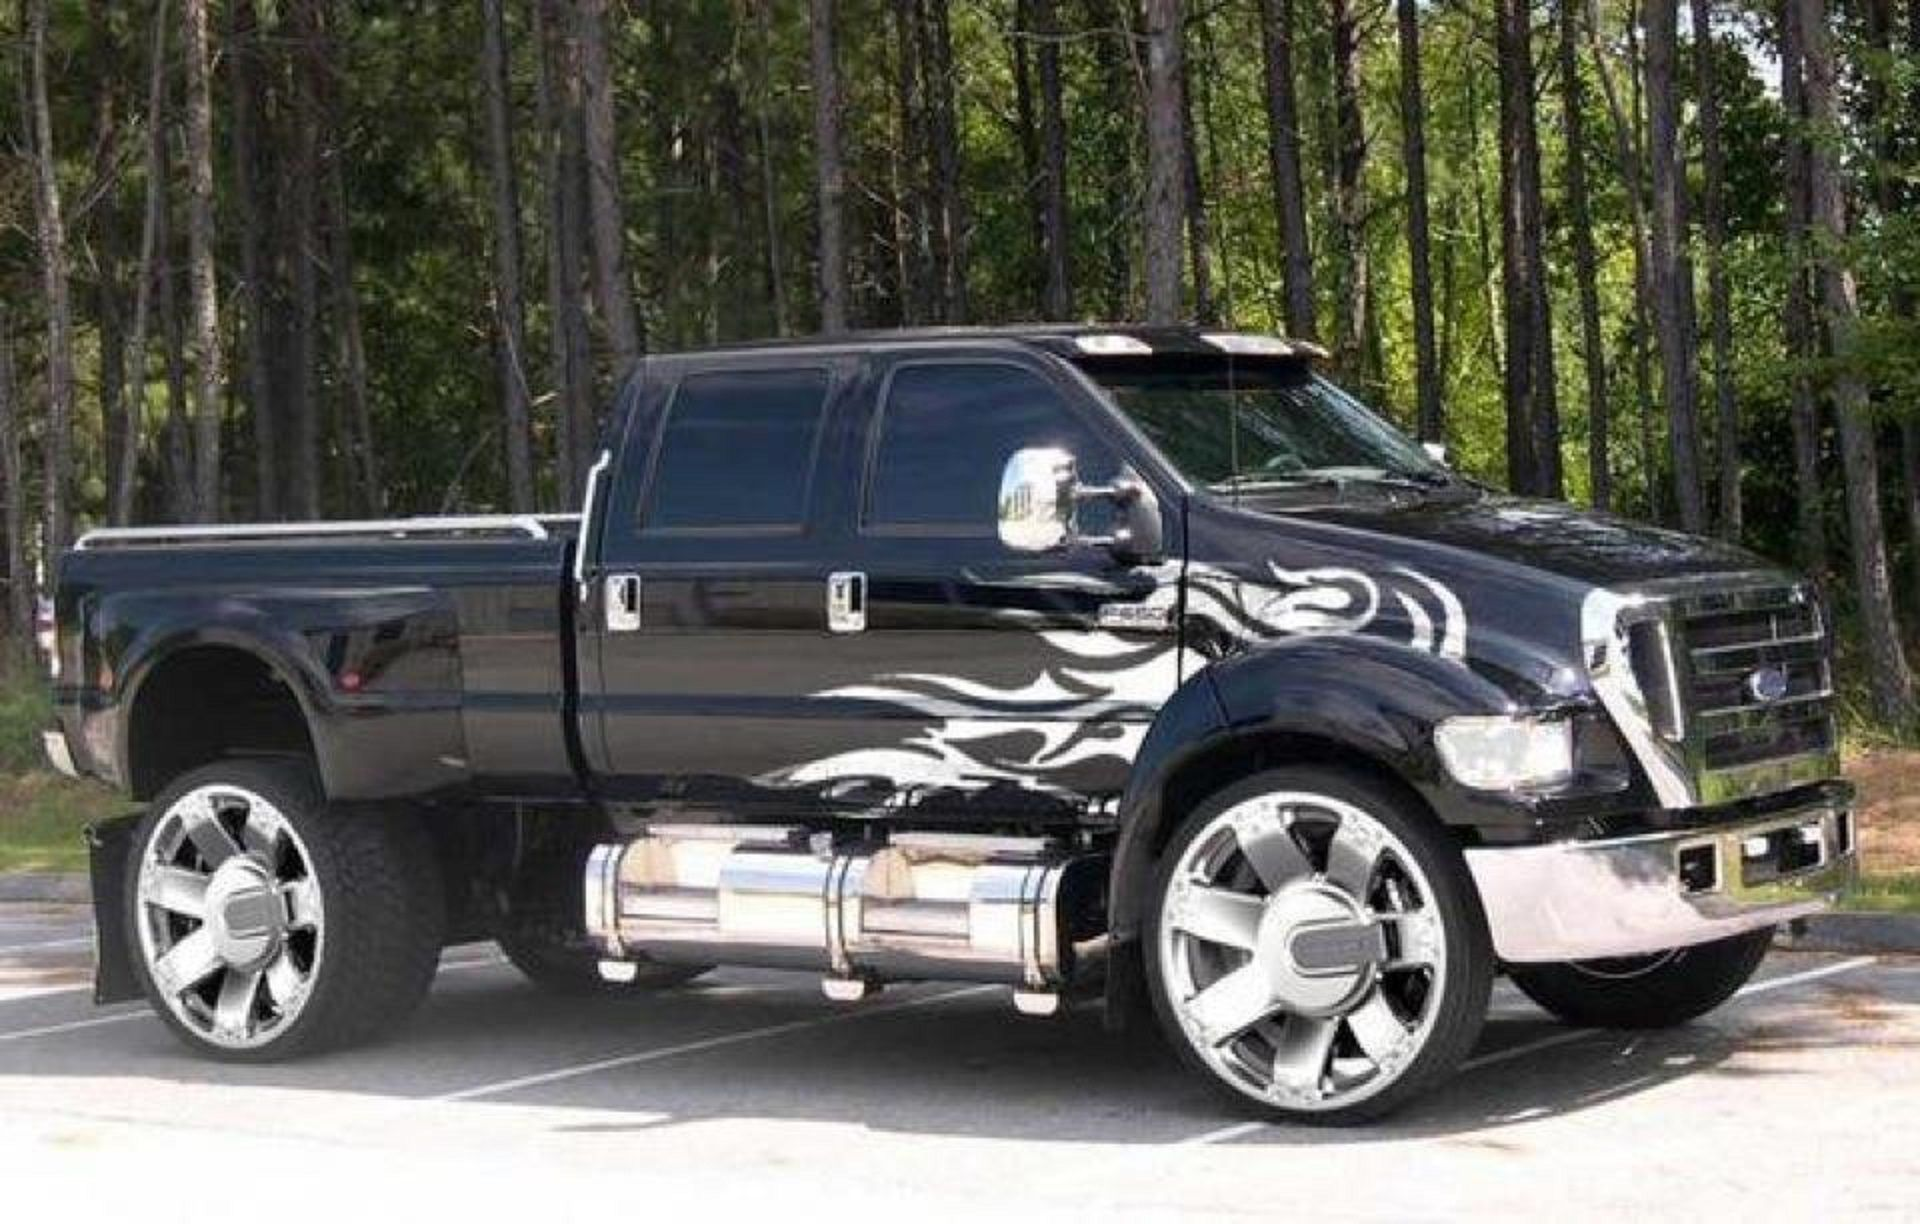 Ford f 650 super truck camionetas y 4x4 pinterest ford ford f650 and 4x4